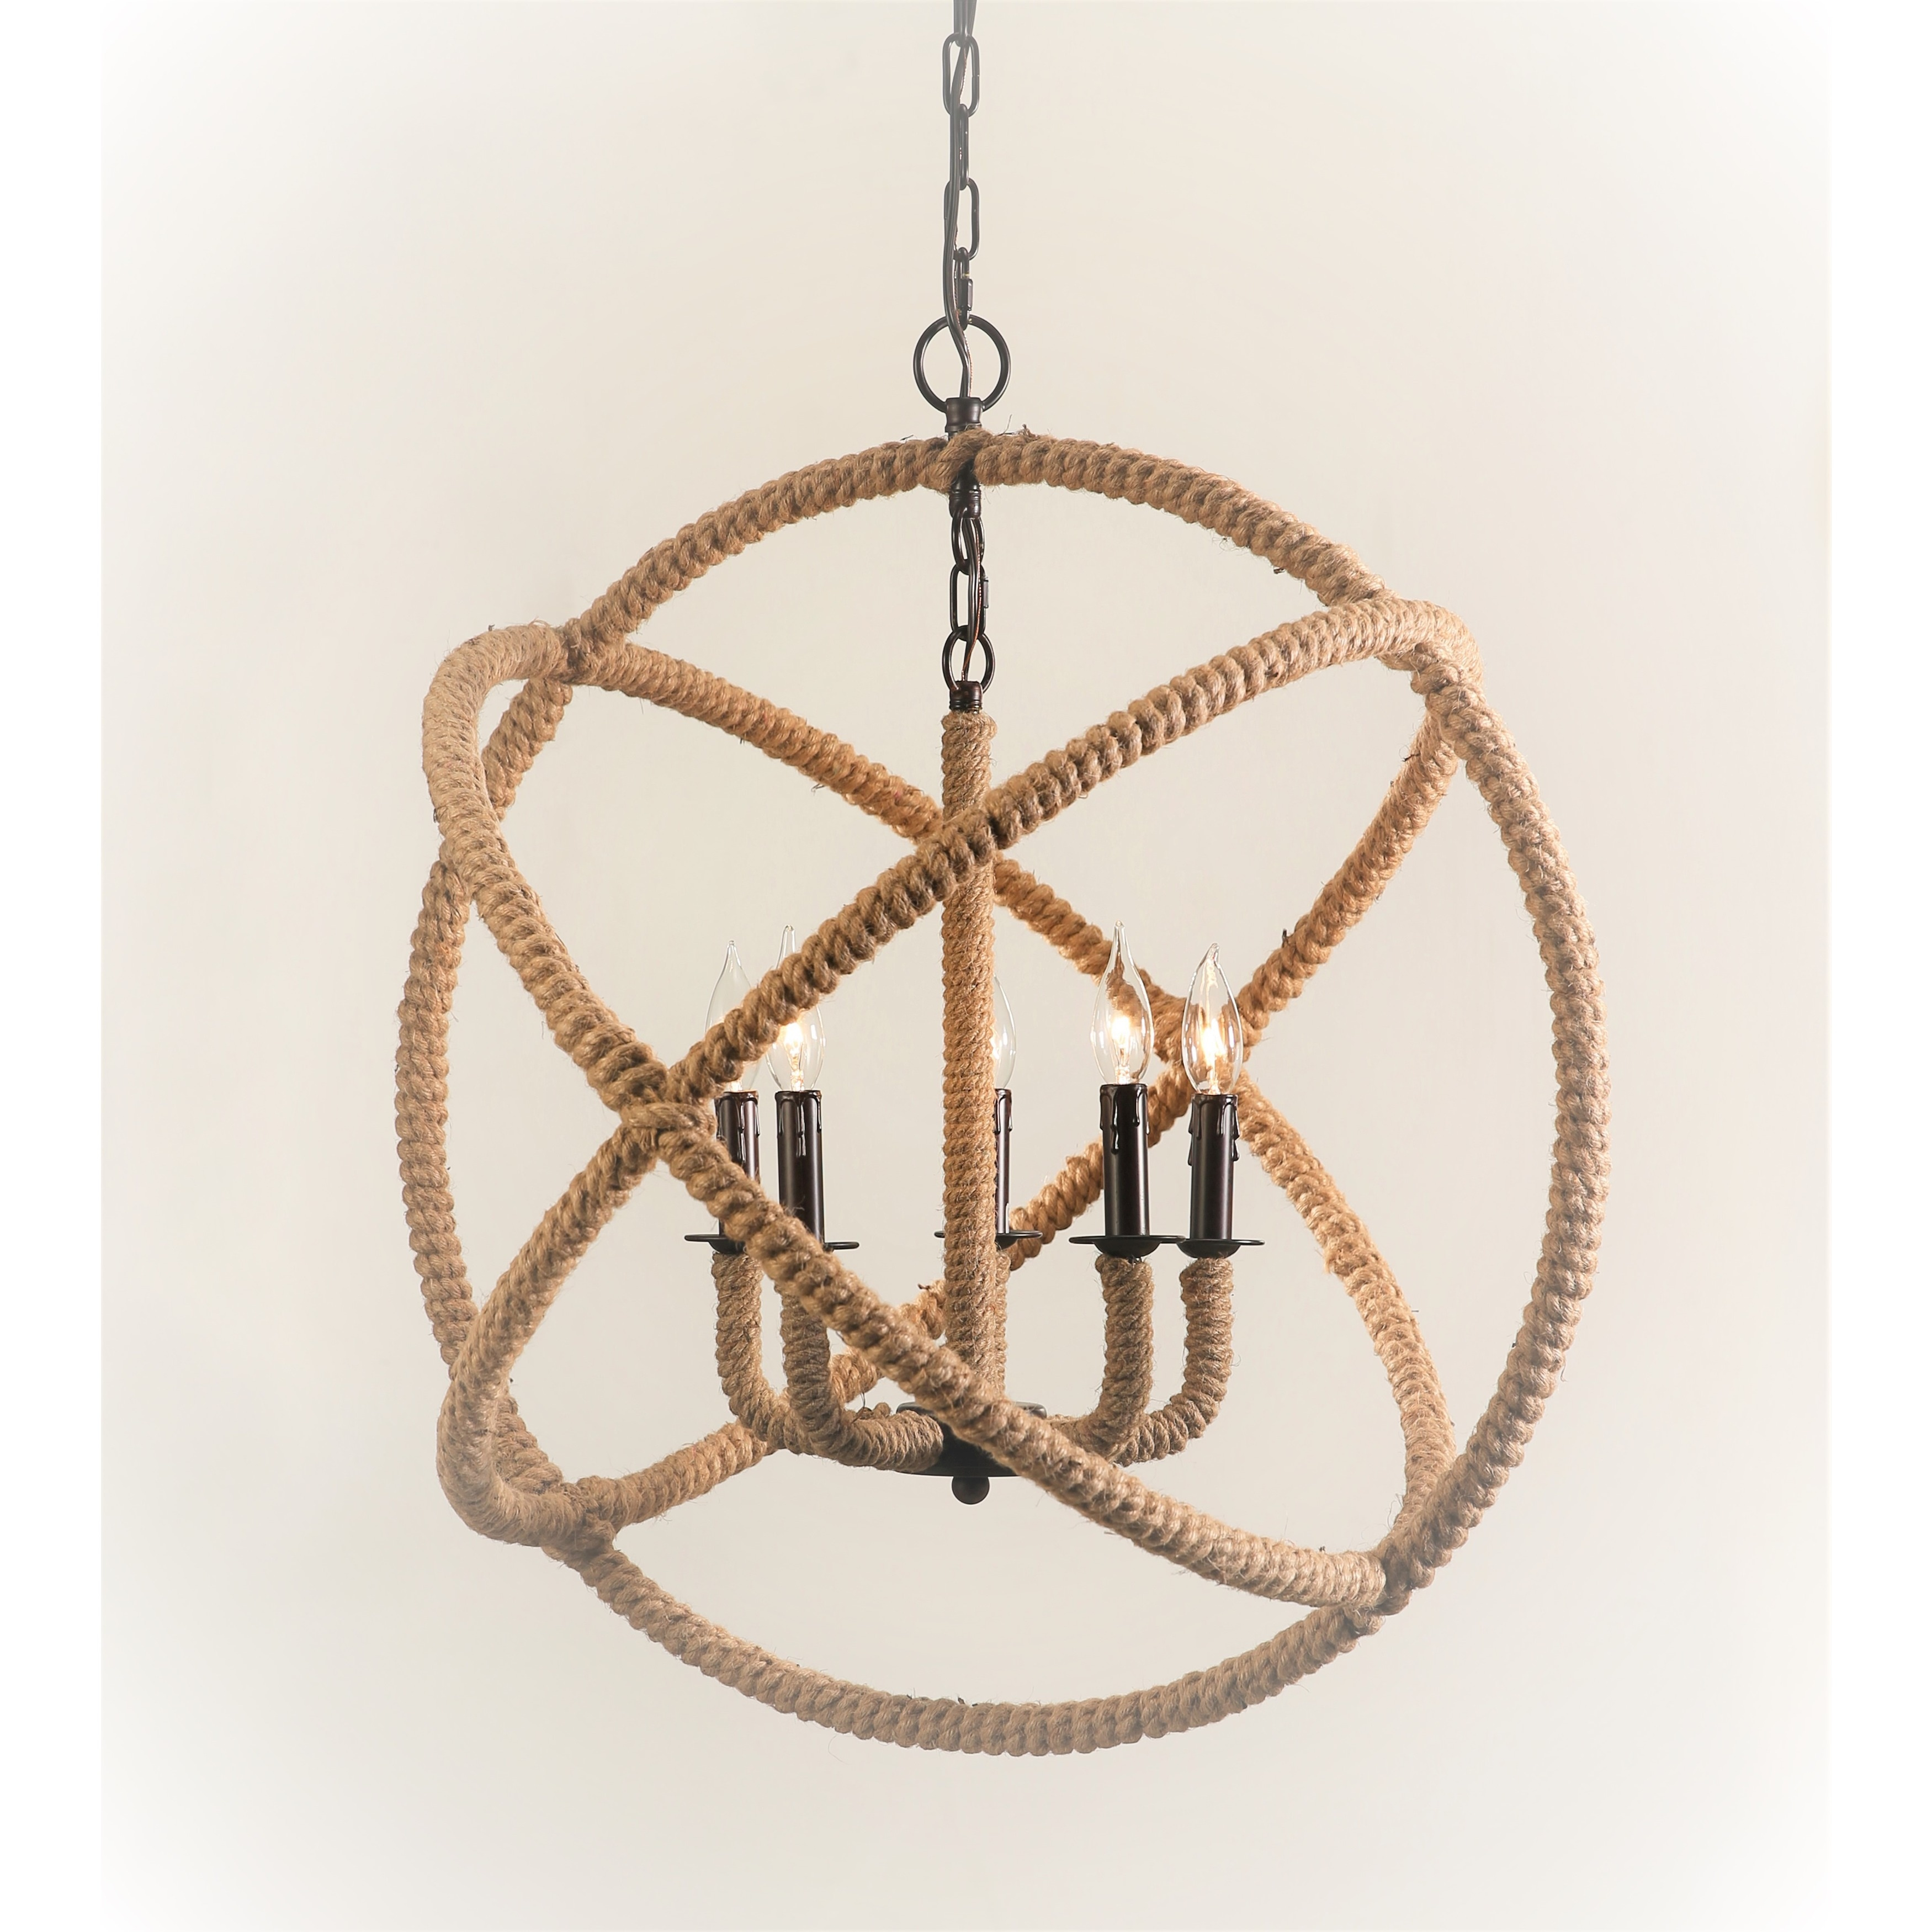 Abbyson Tuscan 5 light Rope enclosed Chandelier Free Shipping